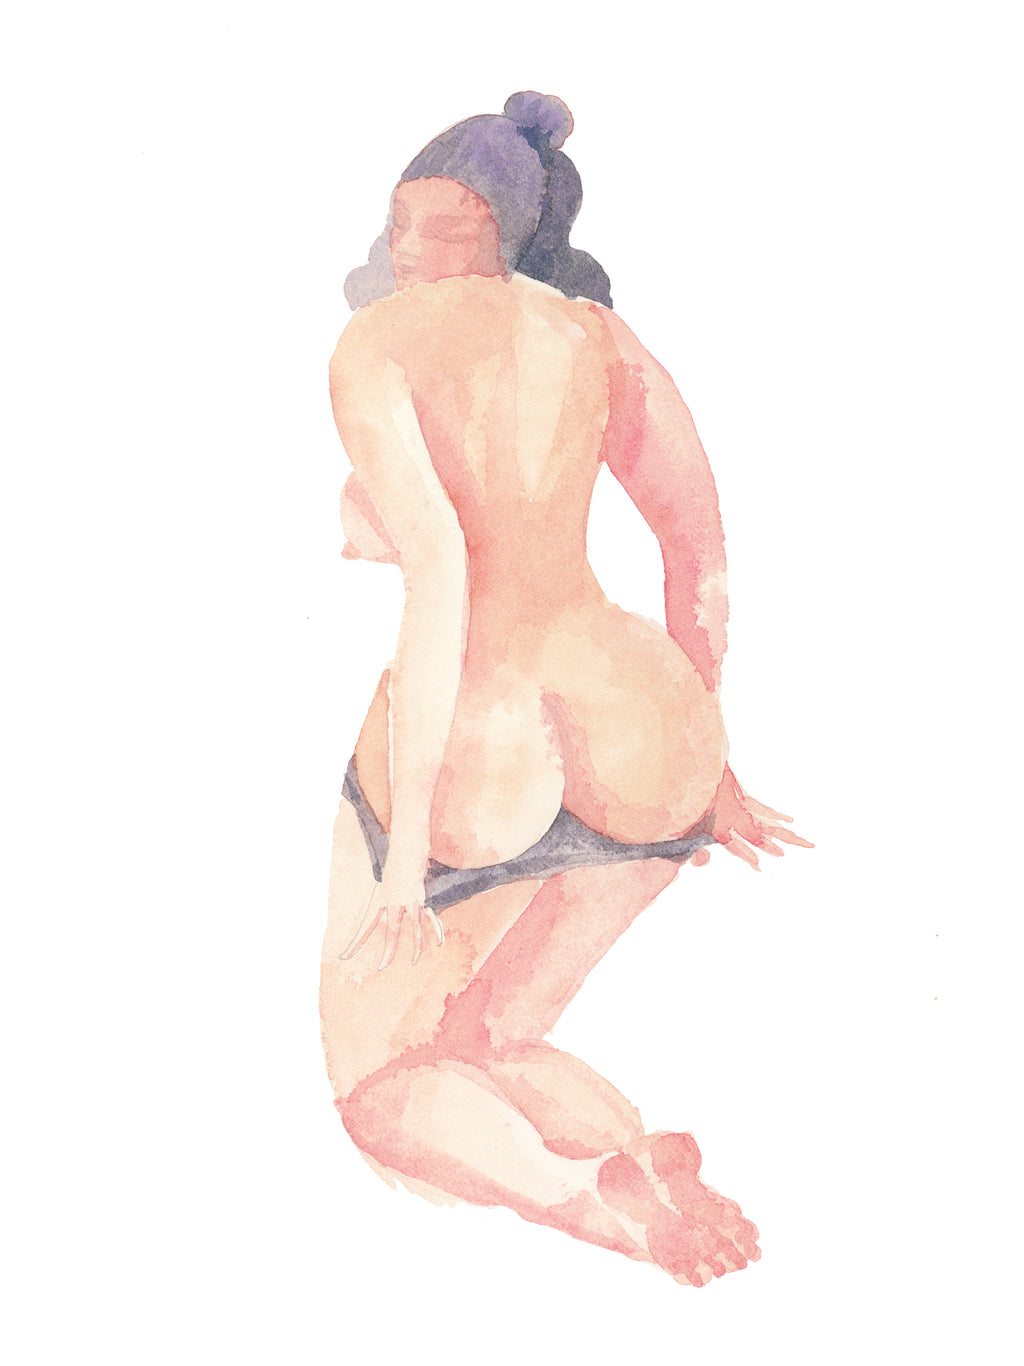 Watercolor Woman Undressing - Original Art